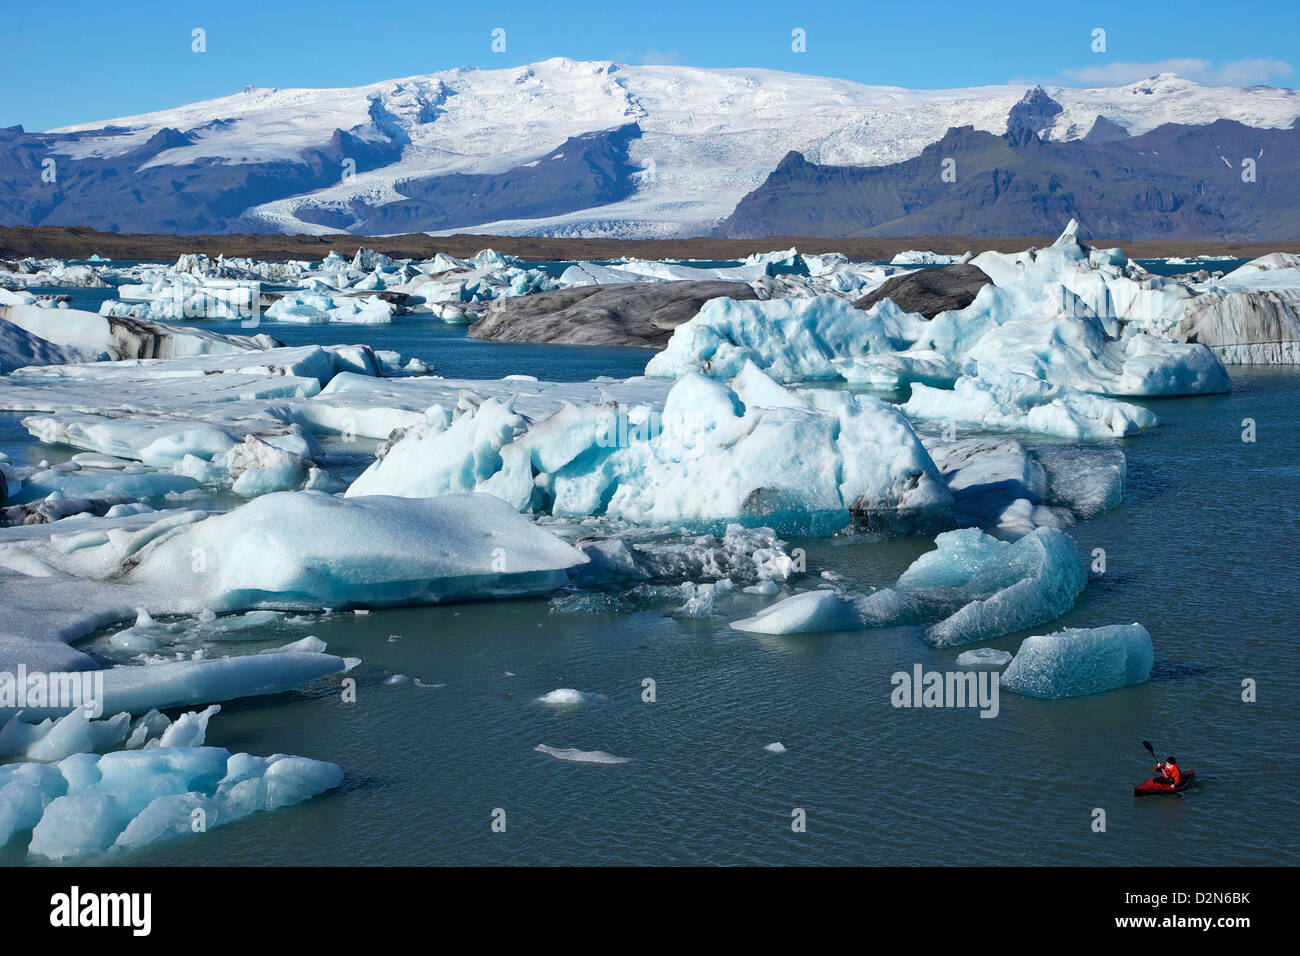 Canoeist paddles between icebergs on glacial lake at Jokulsarlon with the icecap of Vatnajokull behind, Iceland, - Stock Image